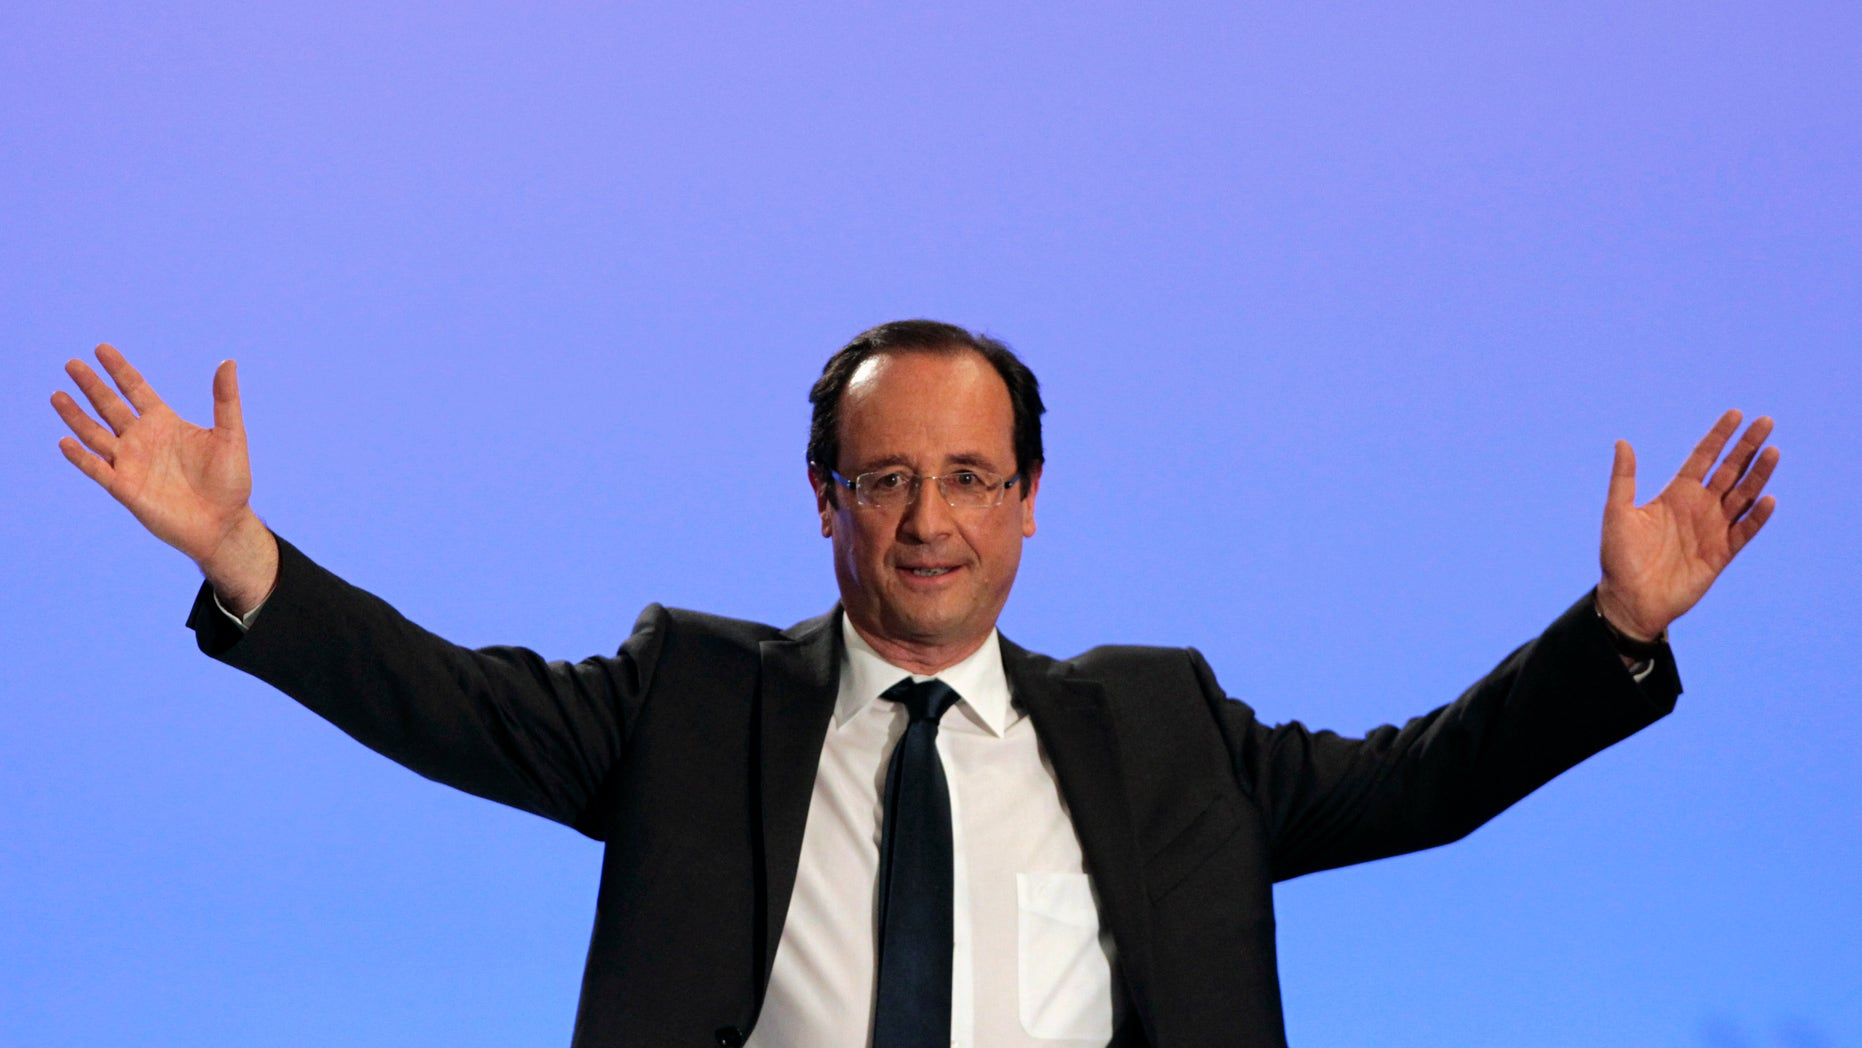 April 22: Socialist Party candidate for the presidential election Francois Hollande waves to supporters after the presidential election first round, in Tulle, central France.